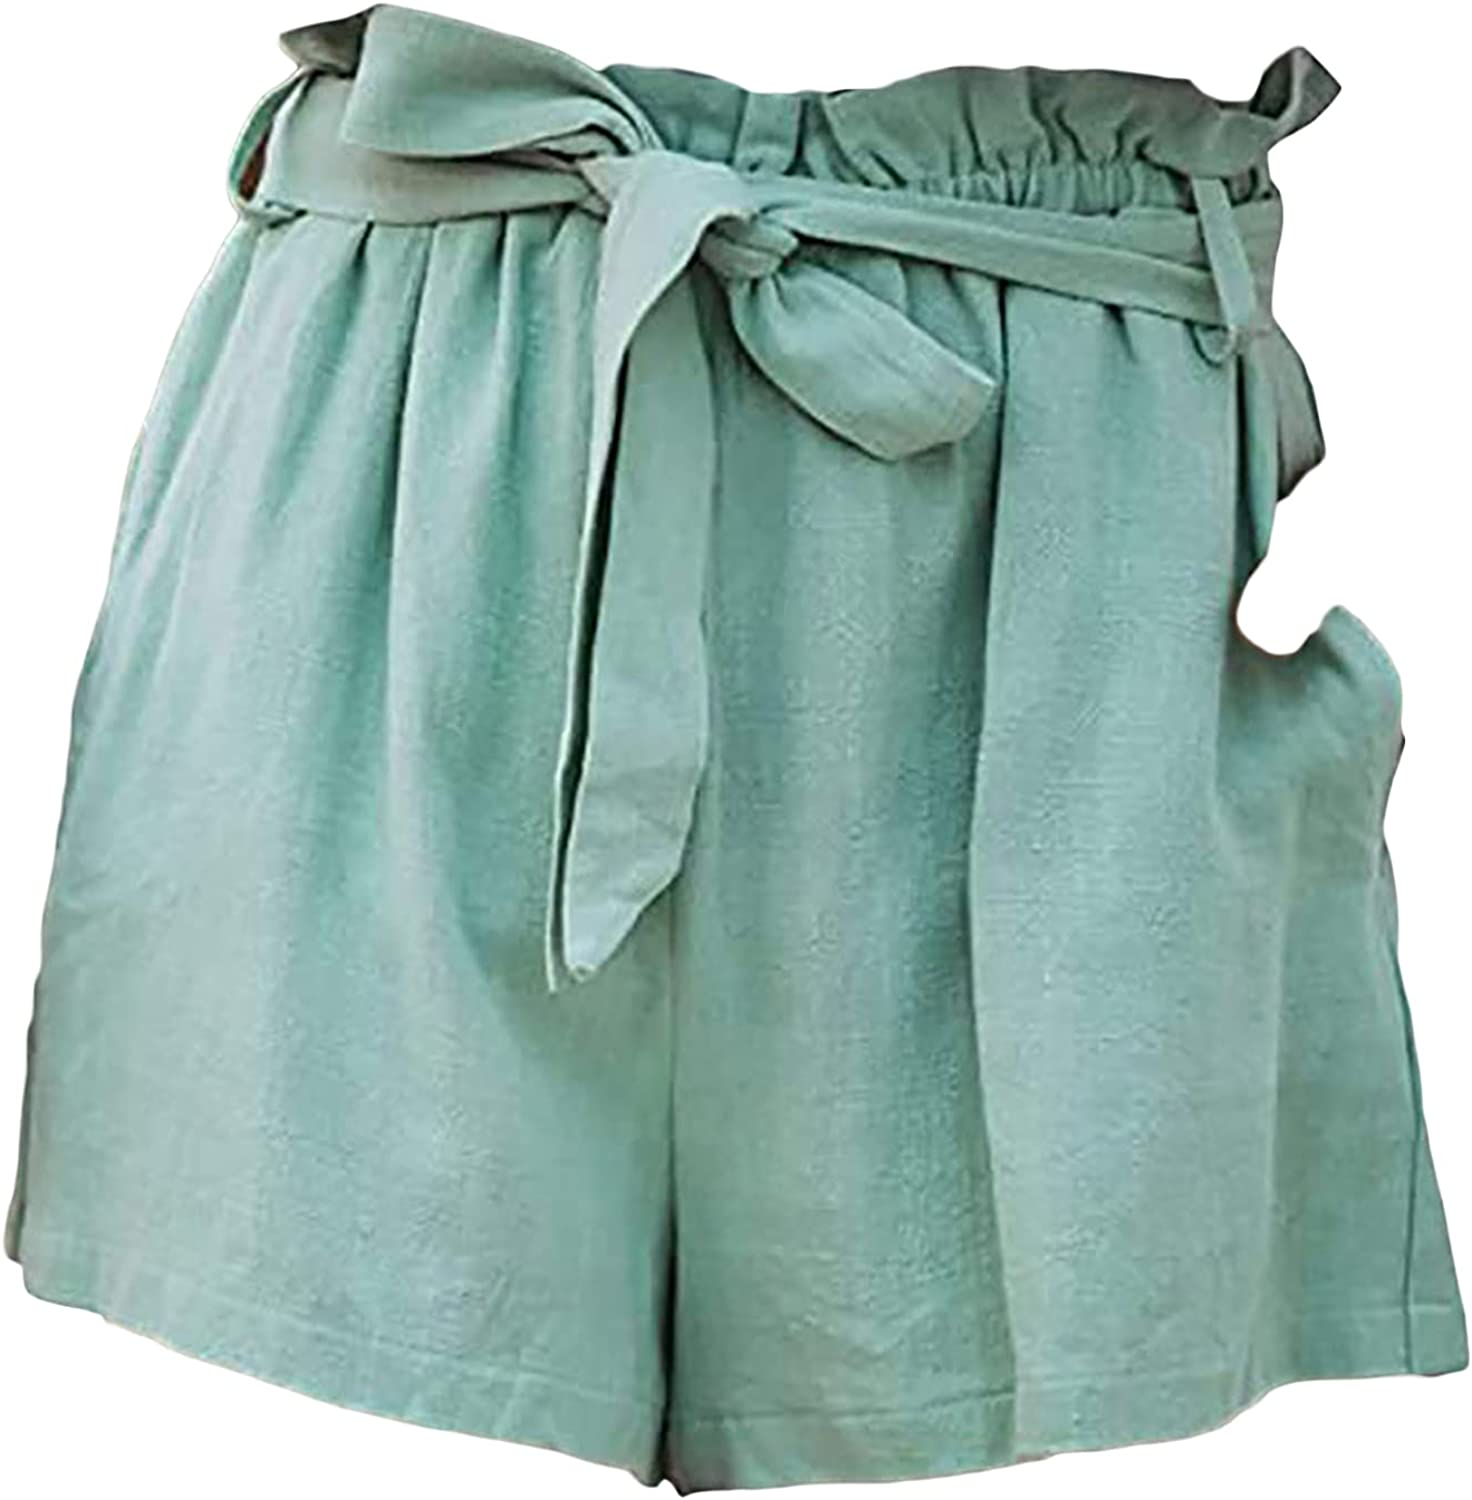 High Waist Bow Very popular! Tie Shorts for Women Ruffle S Complete Free Shipping Bag Paper